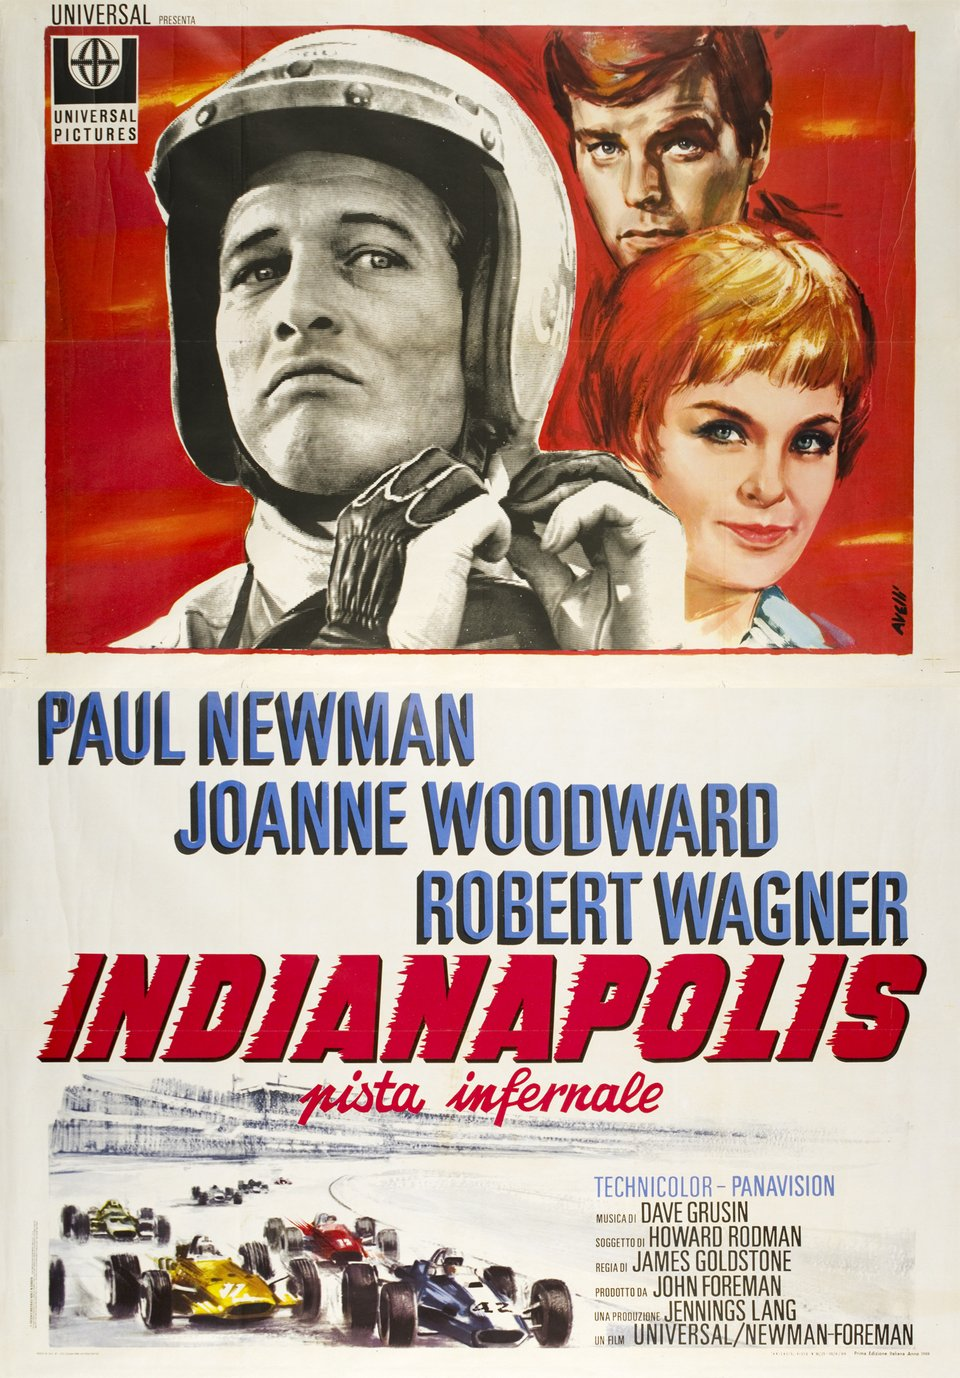 """Indianapolis, pista infernale"" movie with Paul Newmann, Joanne Woodward and Robert Wagner – Vintage poster – Tino AVELLI – 1969"